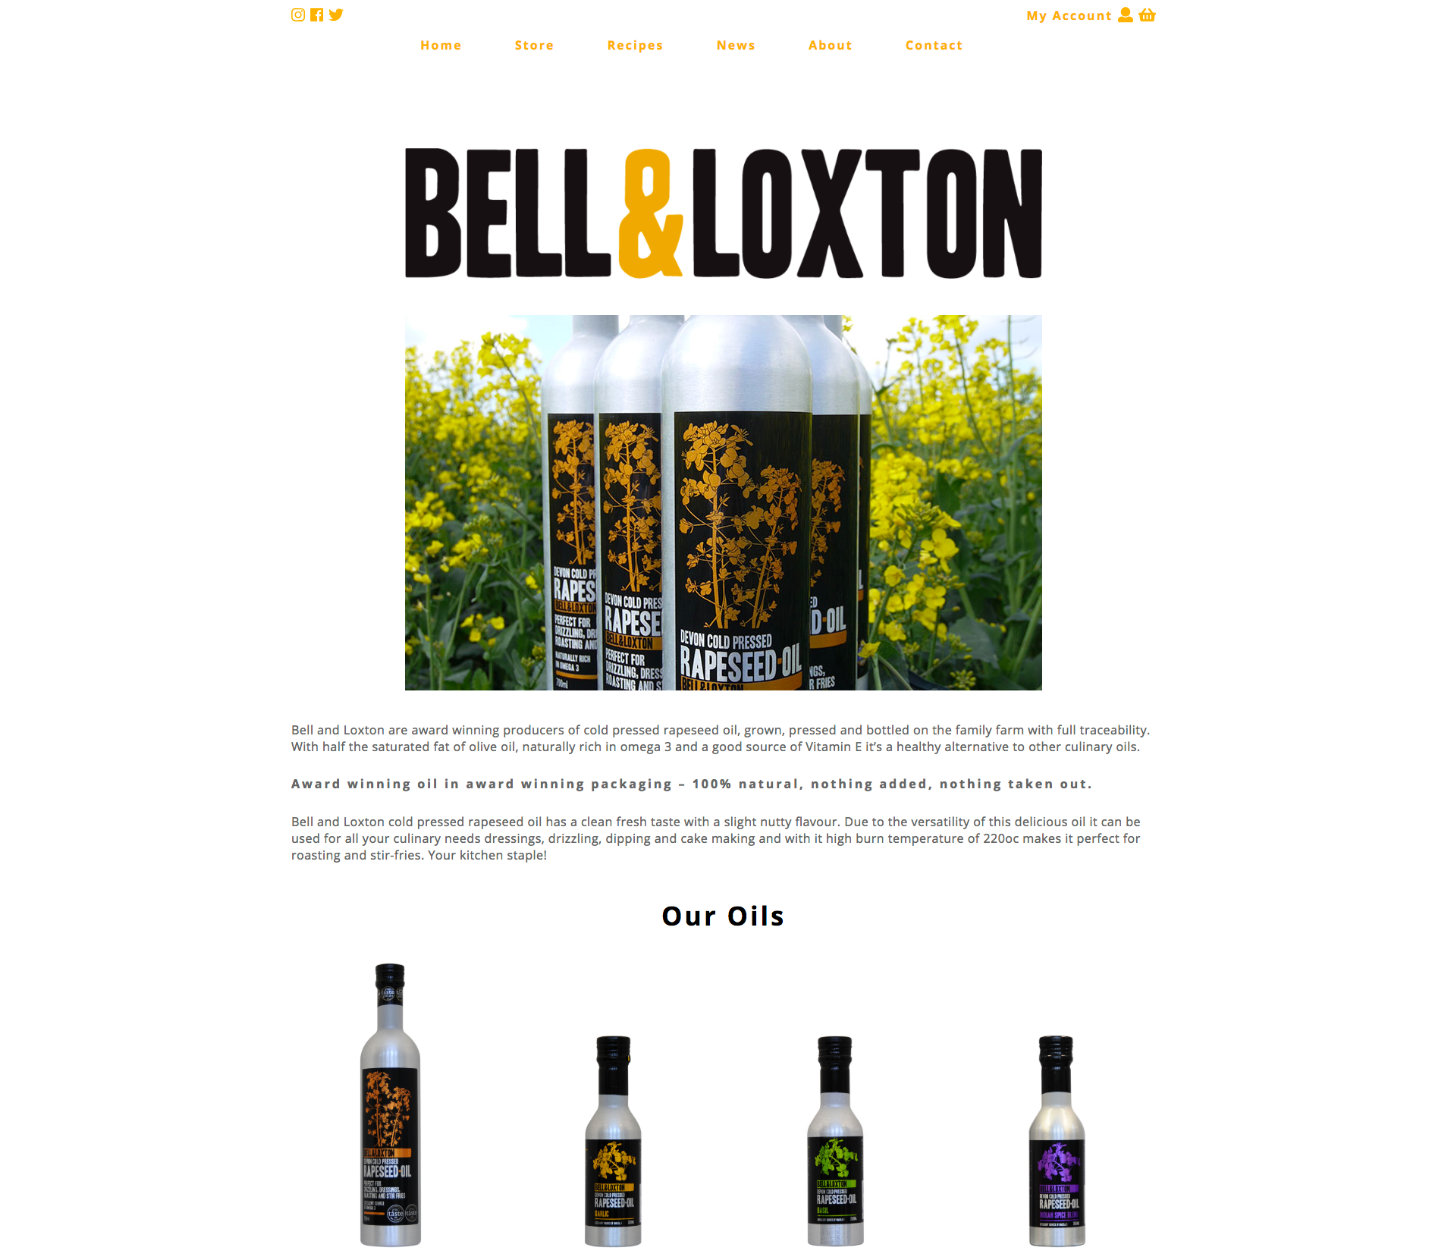 Web Design for Kingsbridge Premium Food Business Bell & Loxton